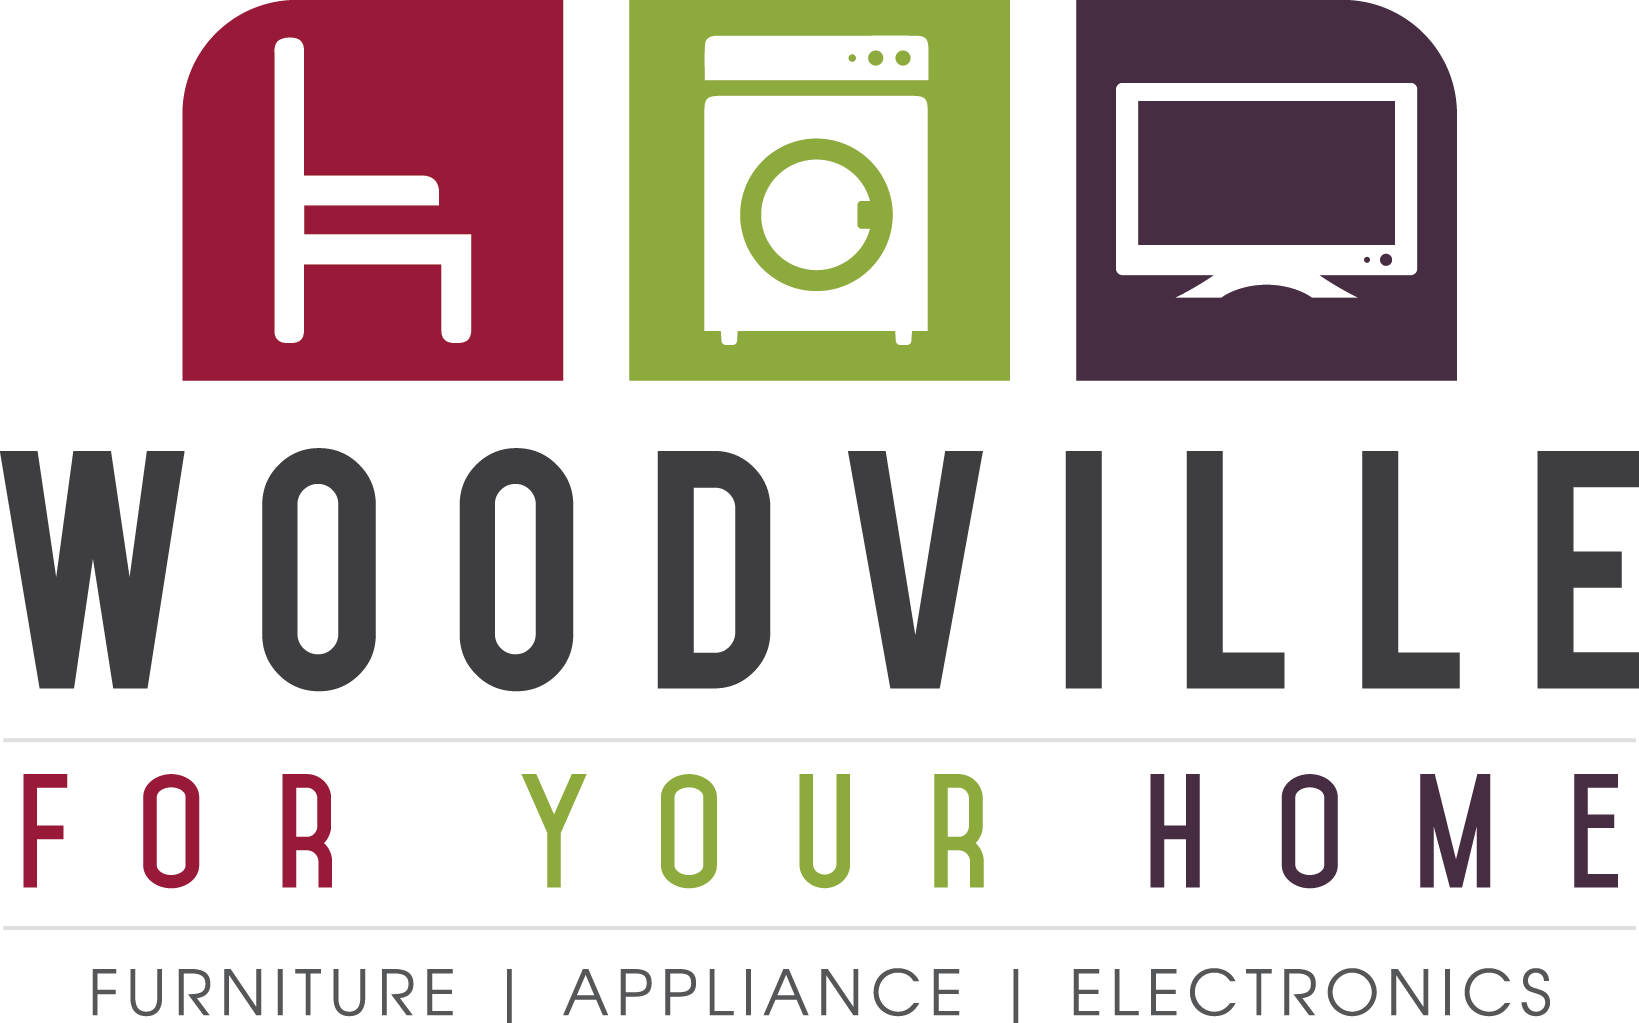 Woodville for your home